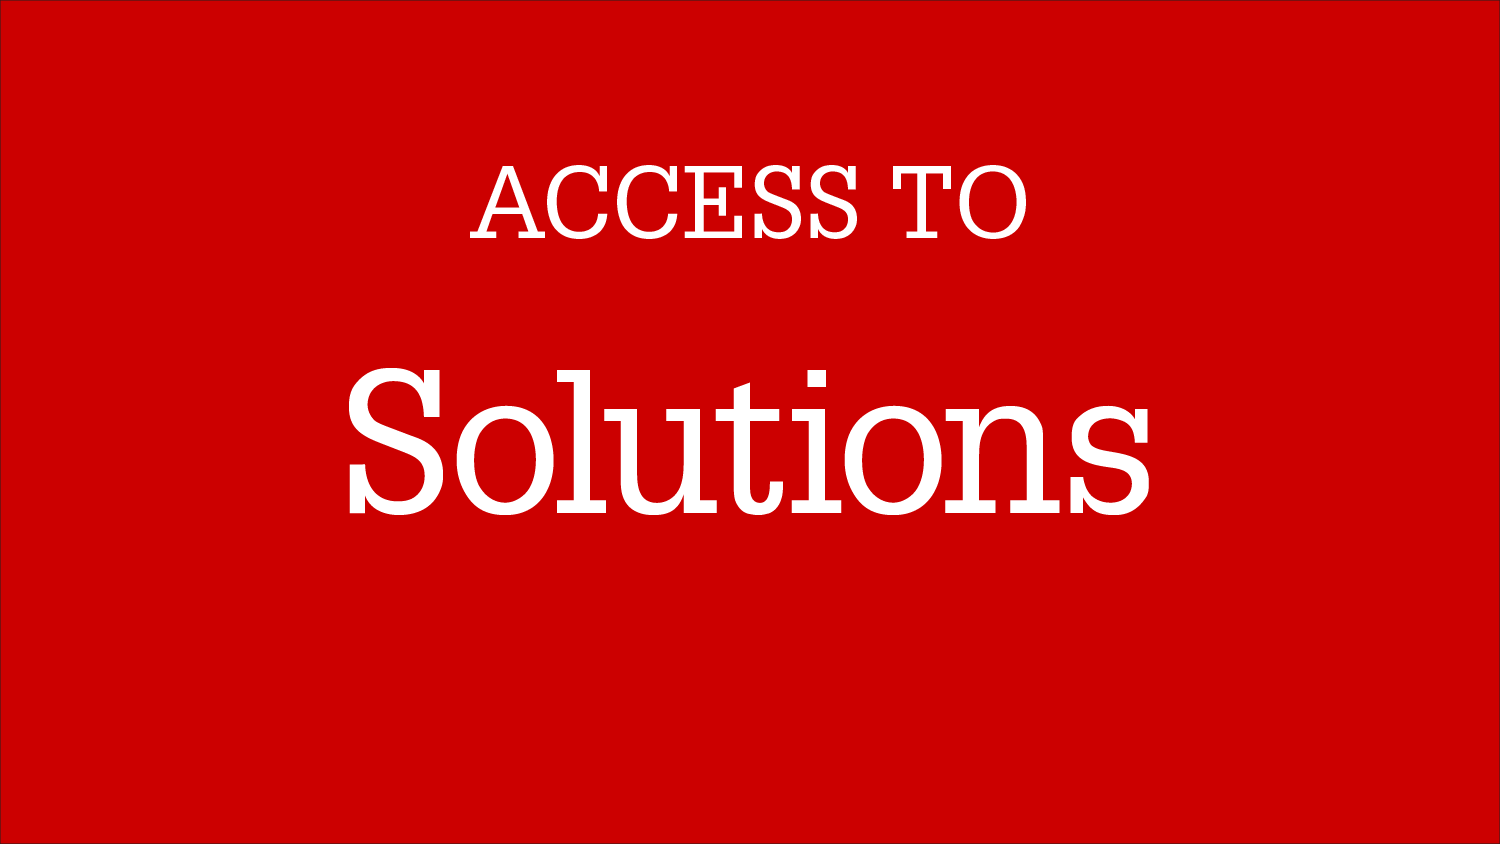 Graphic Image: Access To Solutions